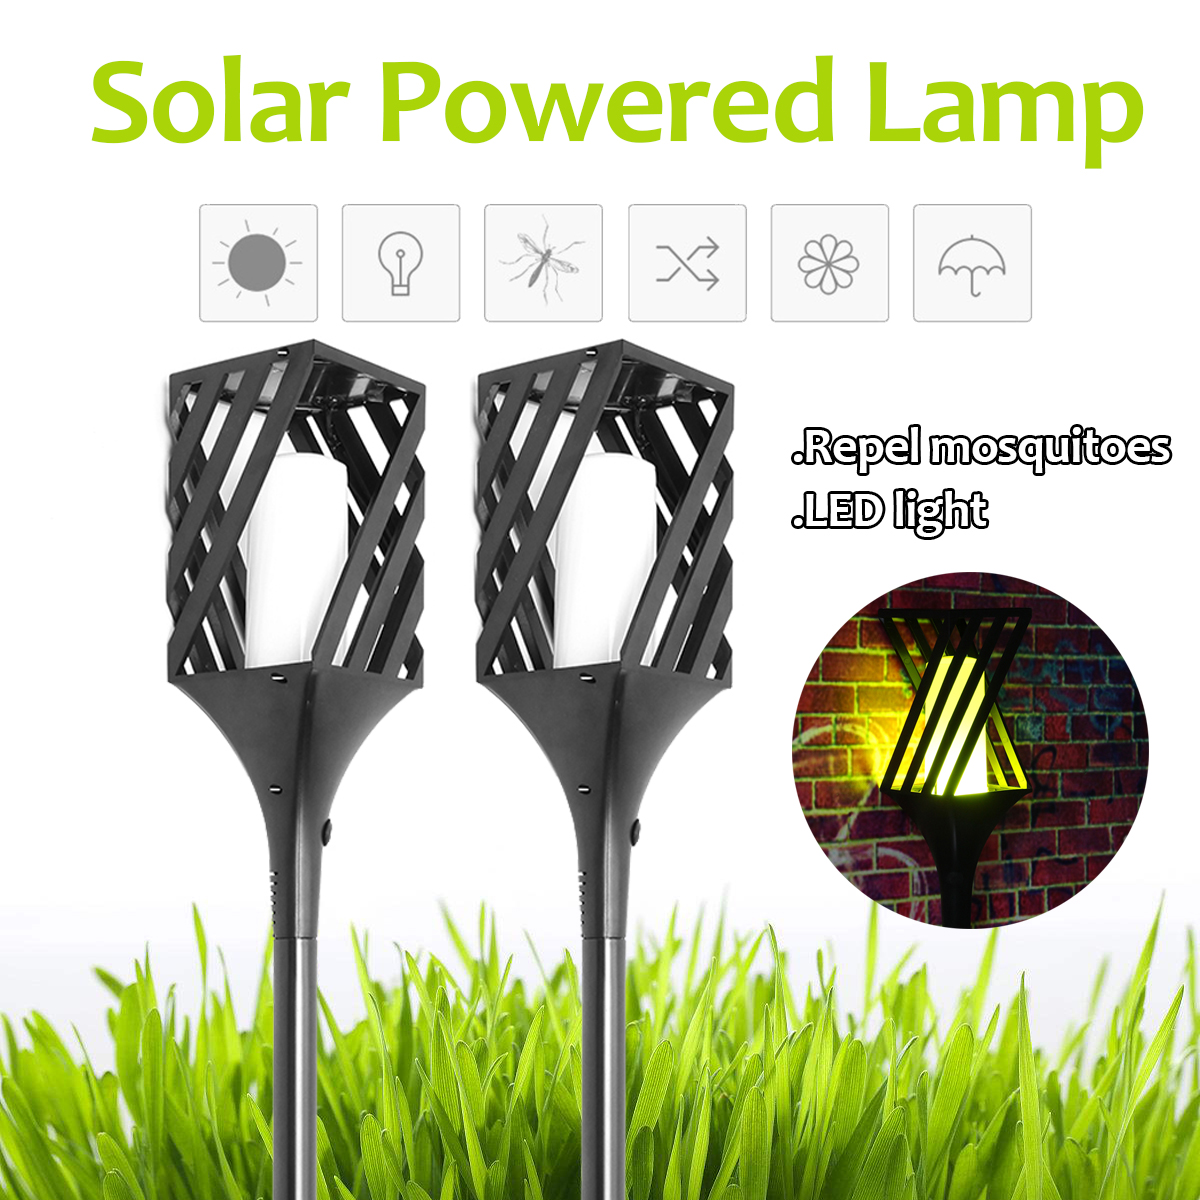 2Pcs Outdoor Solar Power Light Mosquito Killer Lamp Garden Lawn Camping Night Lights Pest Bug Zapper Insect Repeller UV Lamp solar anti mosquito insect killer led lamp powered waterproof ip65 uv light for outdoor yard garden lawn farm camping